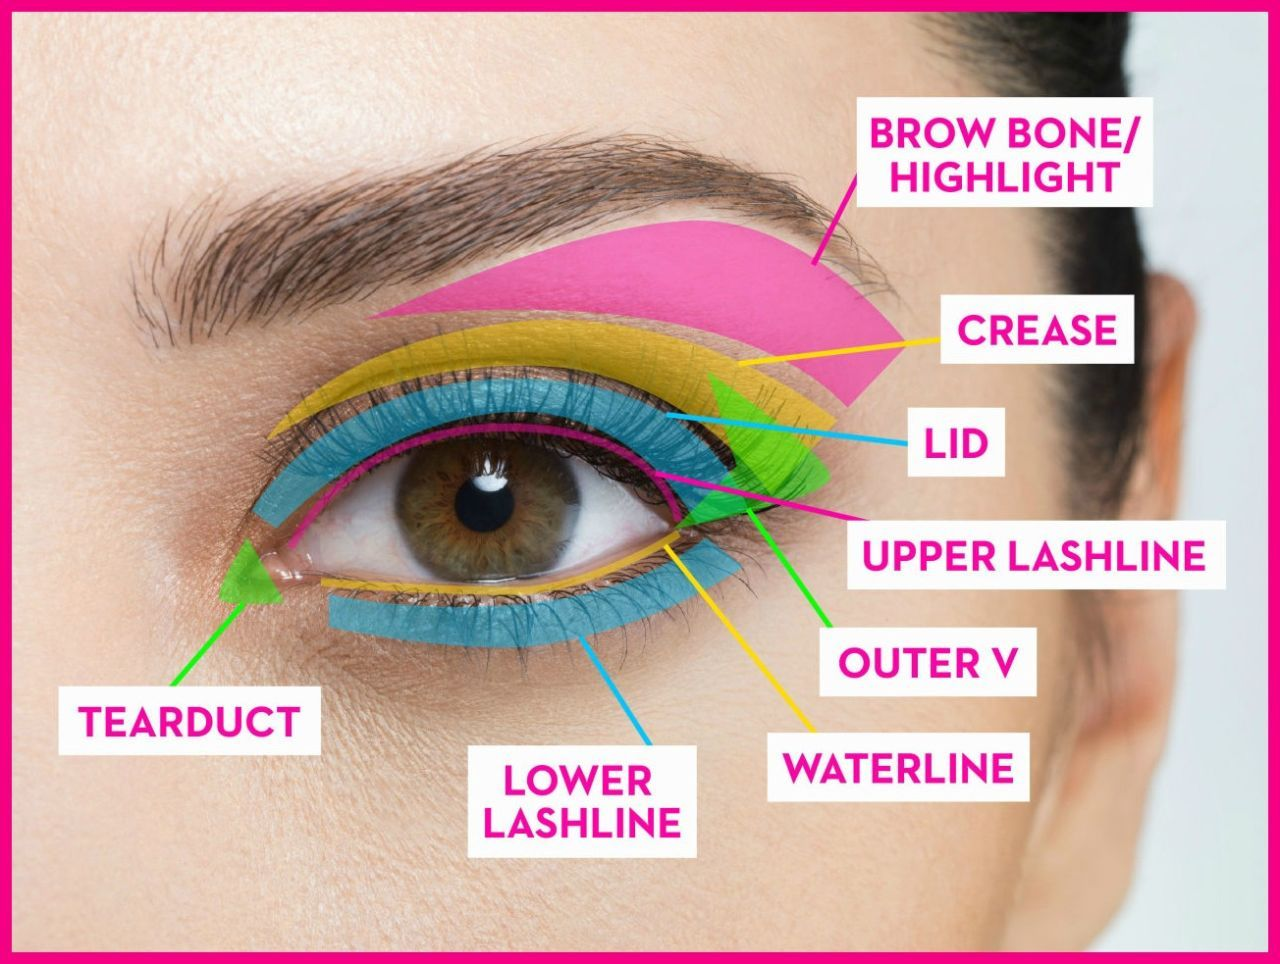 16 eye makeup tips you need to know easy eye makeup tricks eye diagram for makeup eye map where to apply eyeshadow makeup [ 1280 x 964 Pixel ]